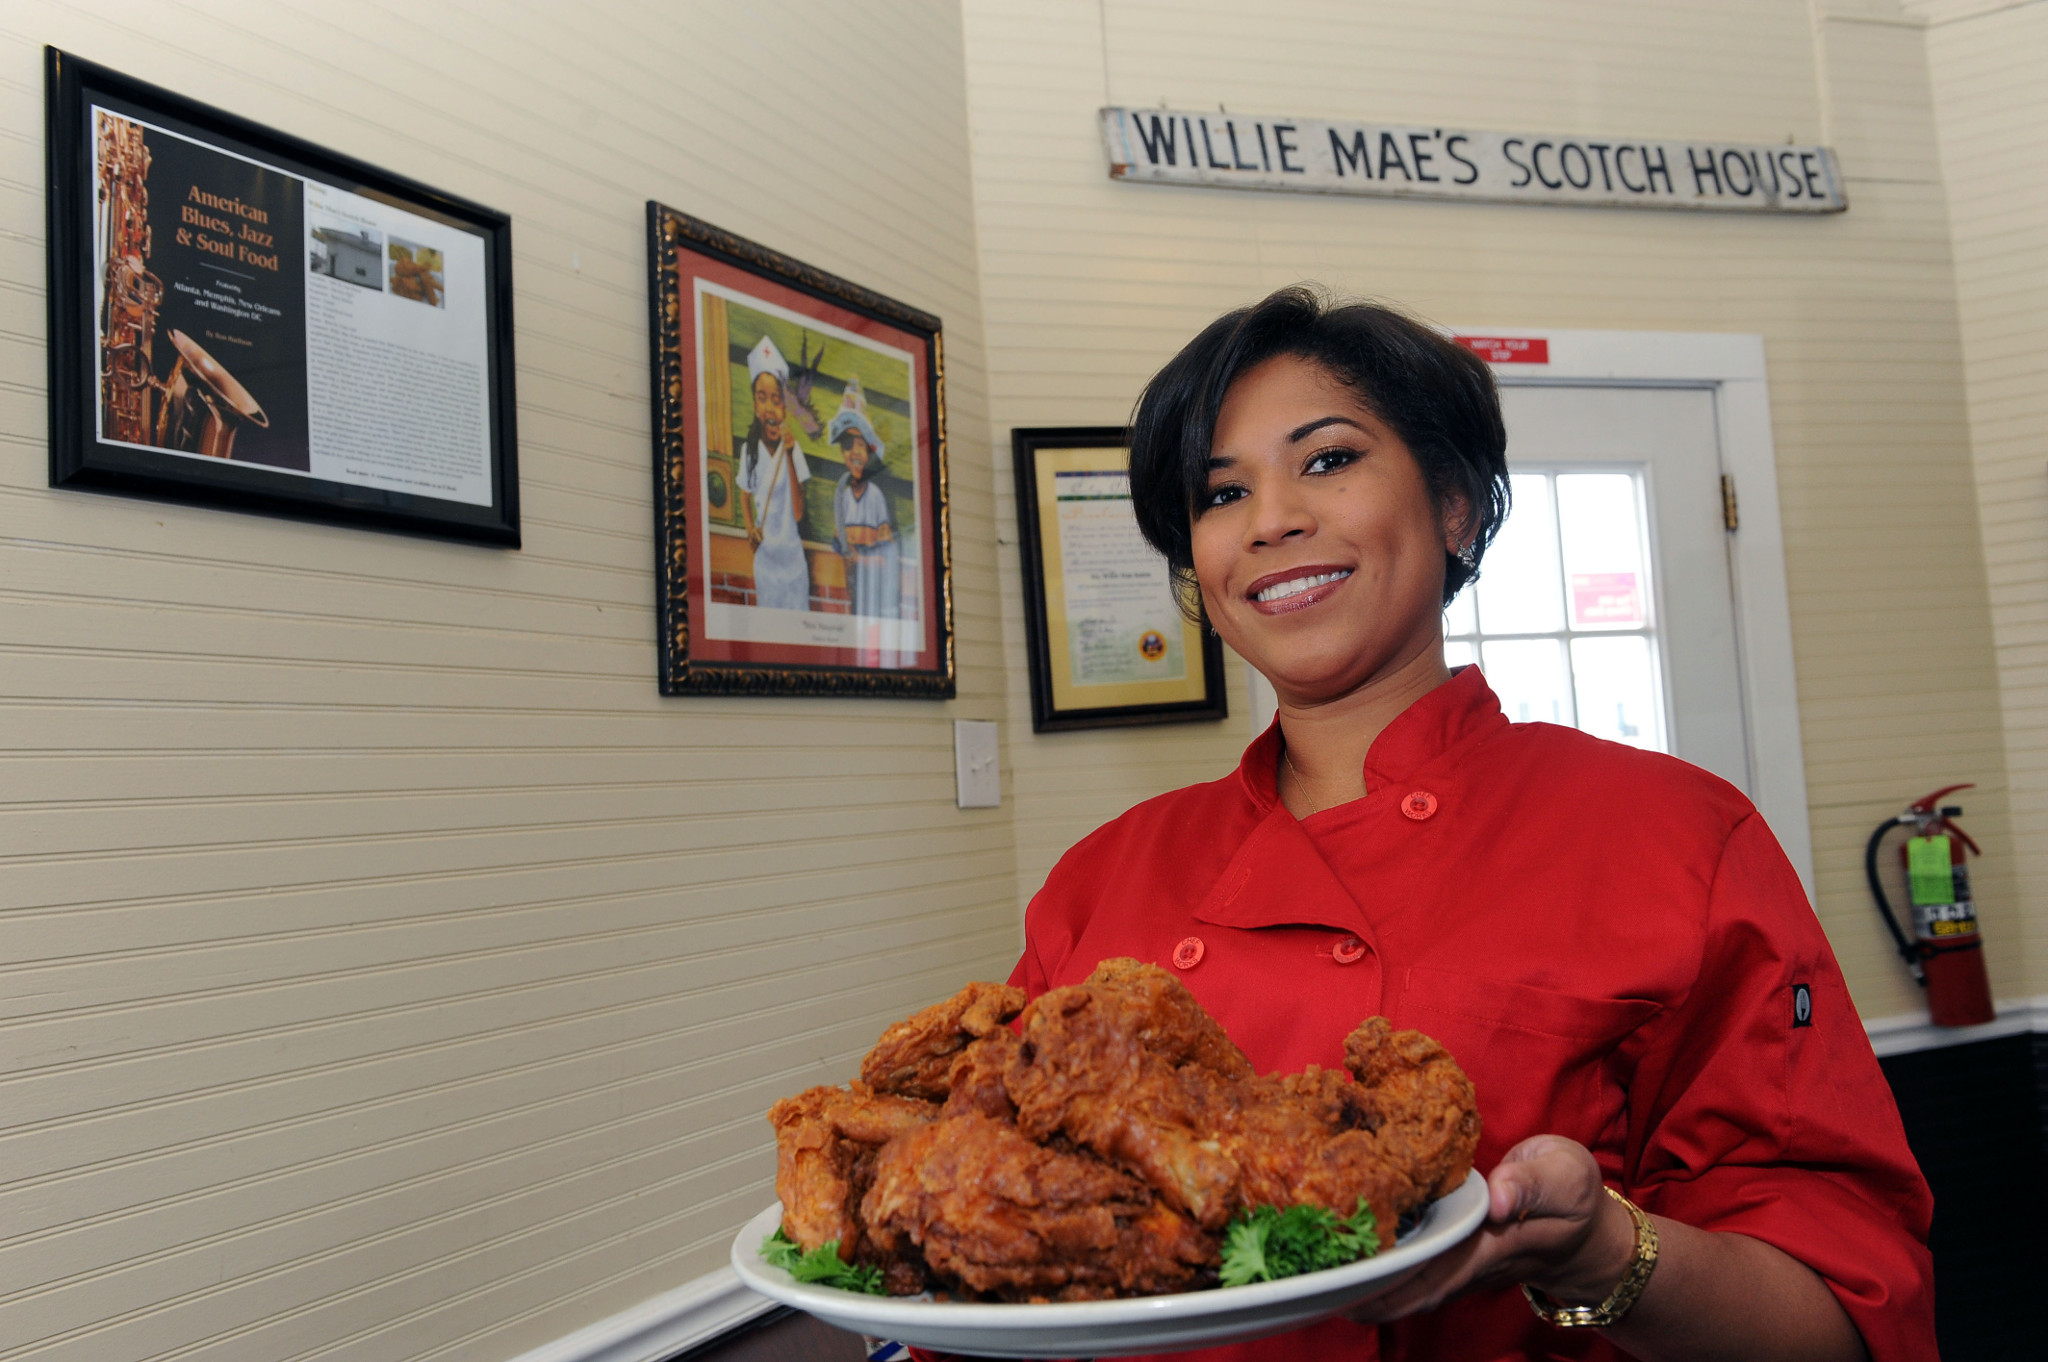 Wille Mae's